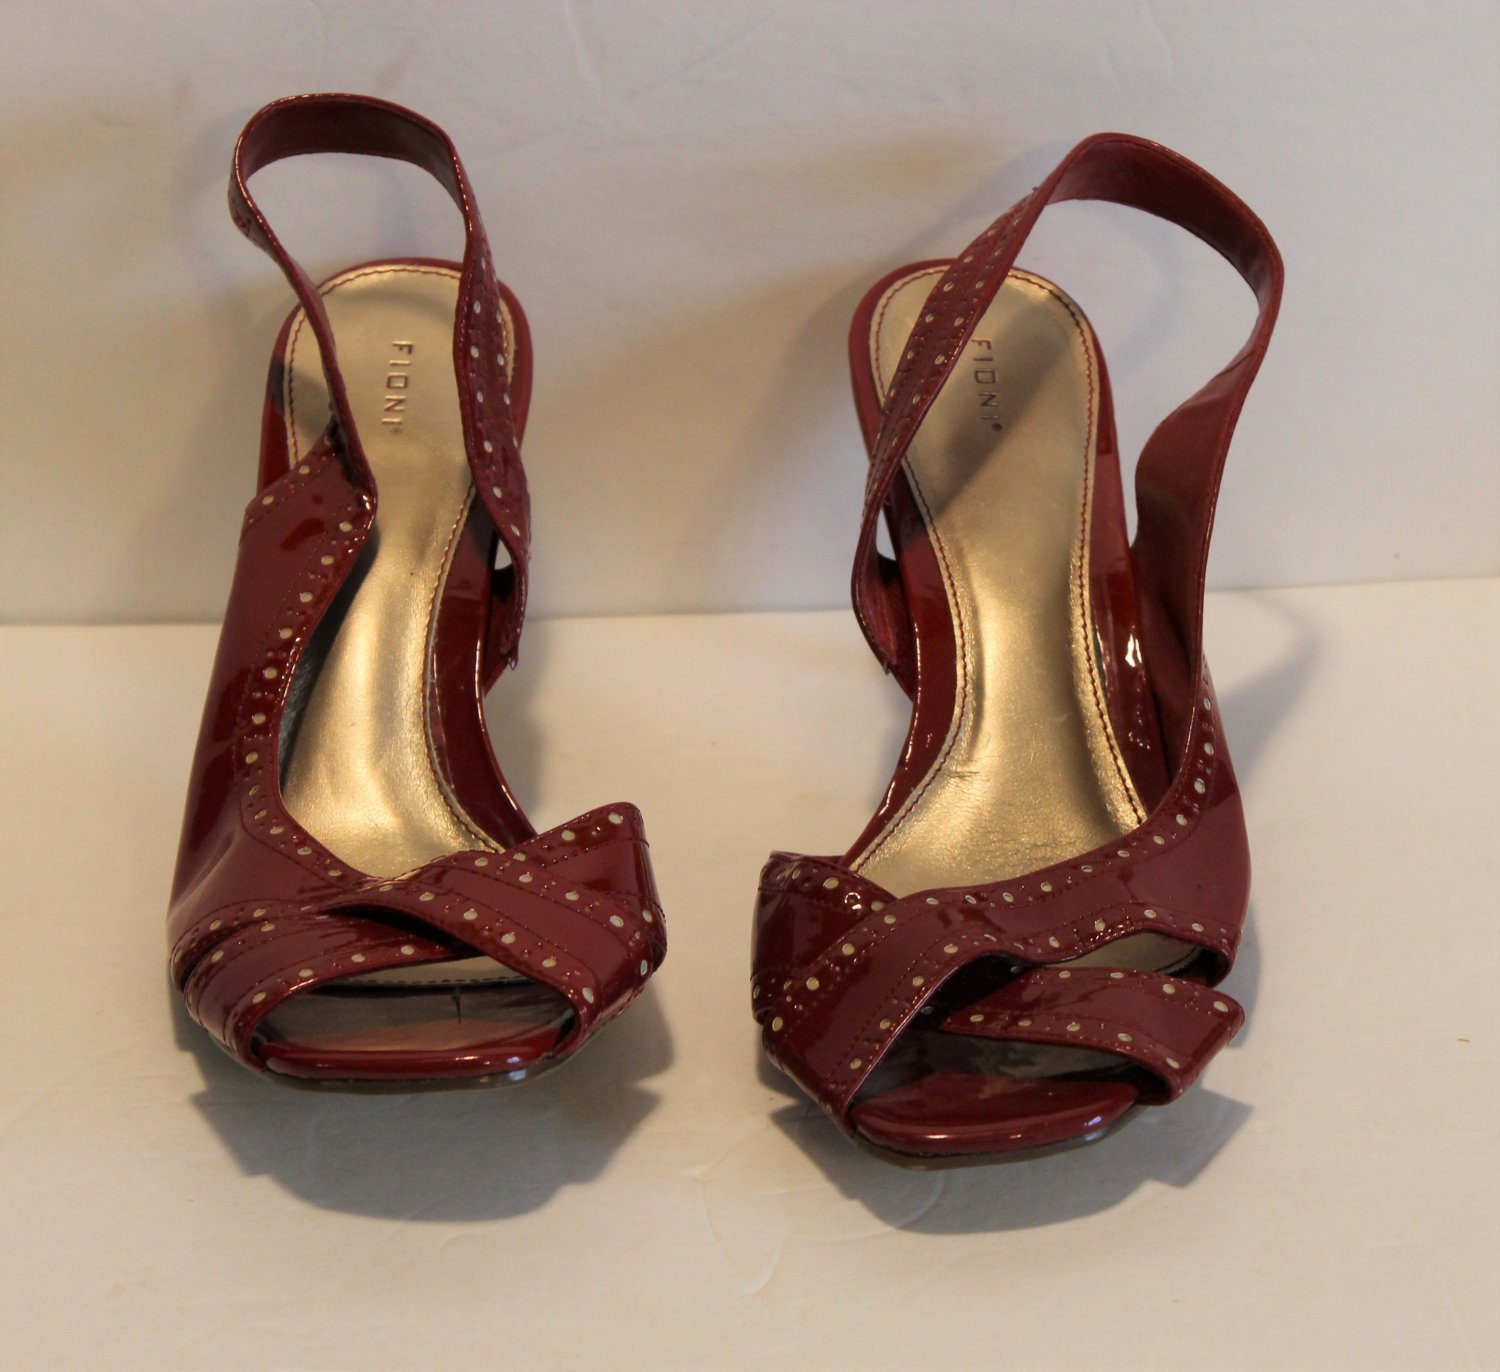 "Fioni Red Patent Strappy Sling Backs 3.25"" Heel Shoe Size 10"